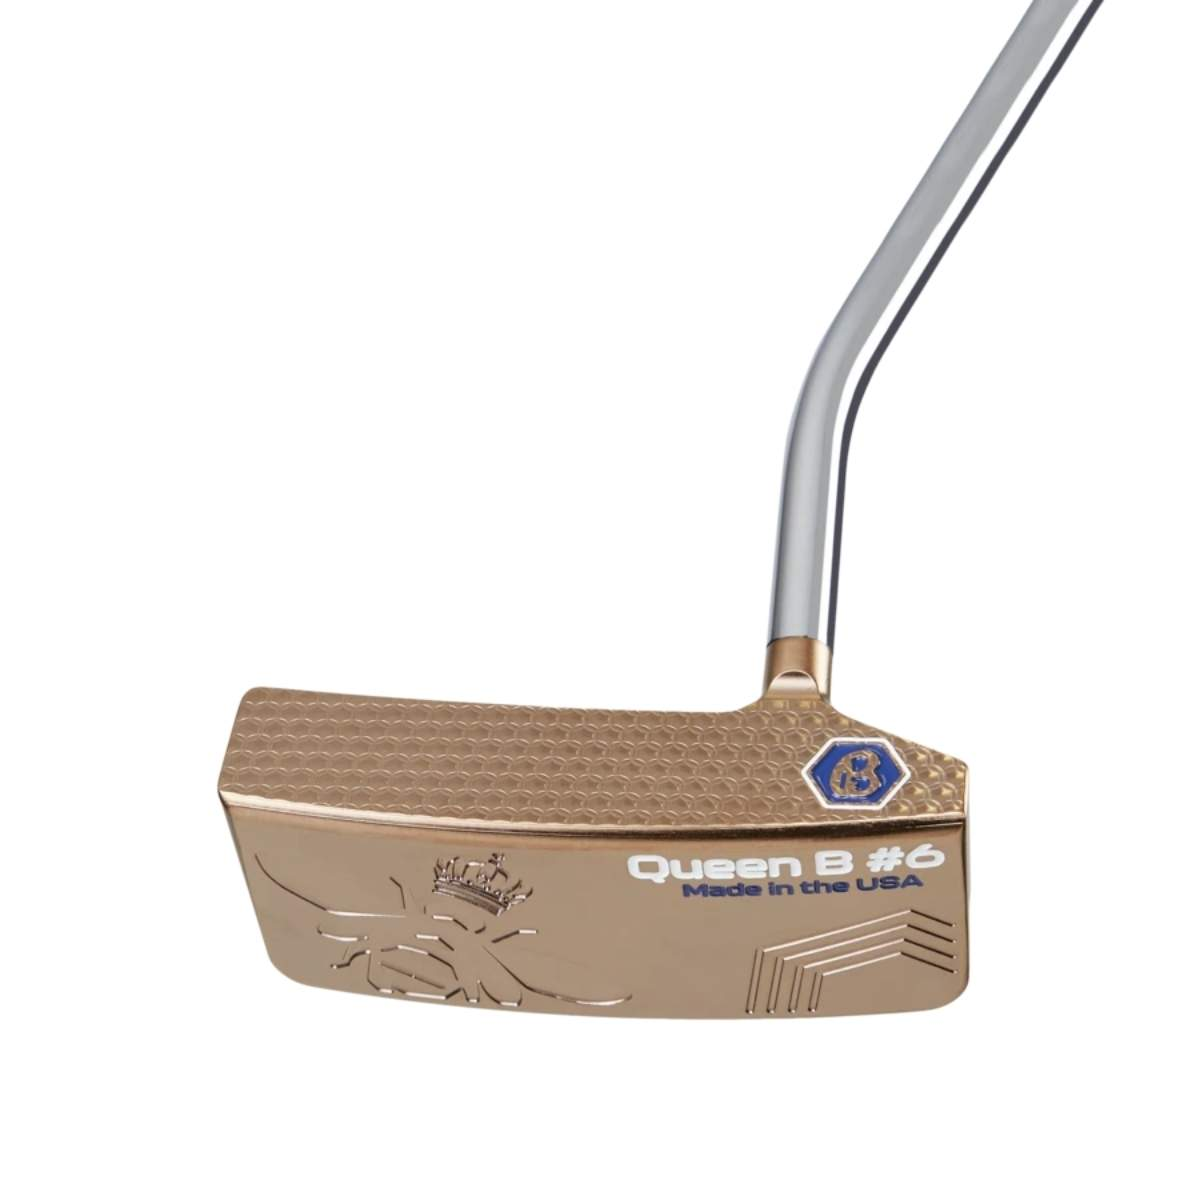 Bettinardi 2021 Queen B 6 Putter